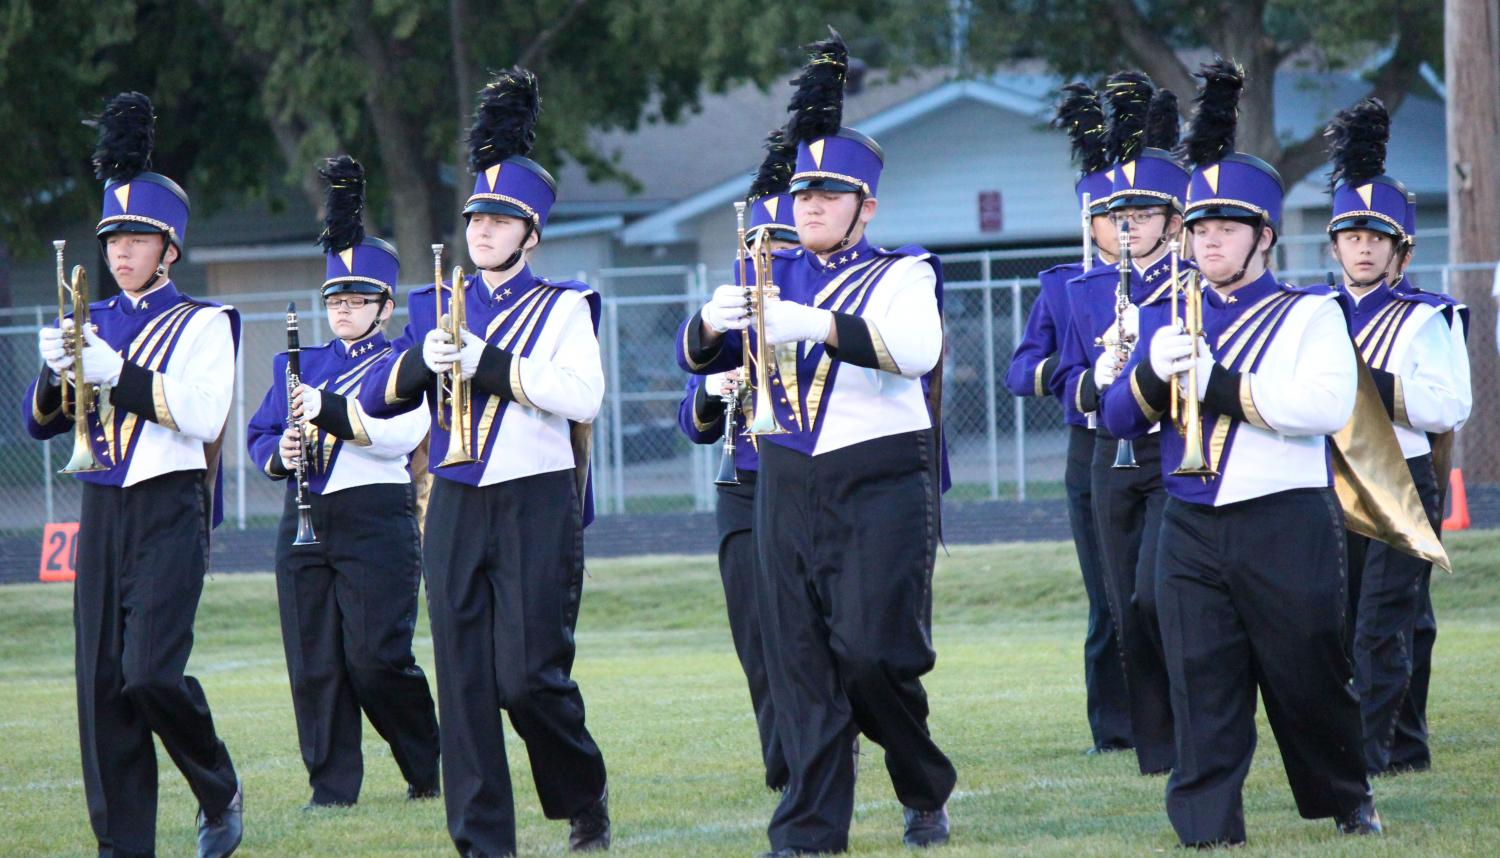 Members of the brass section of the Duster Band perform during a halftime show at a recent football game.